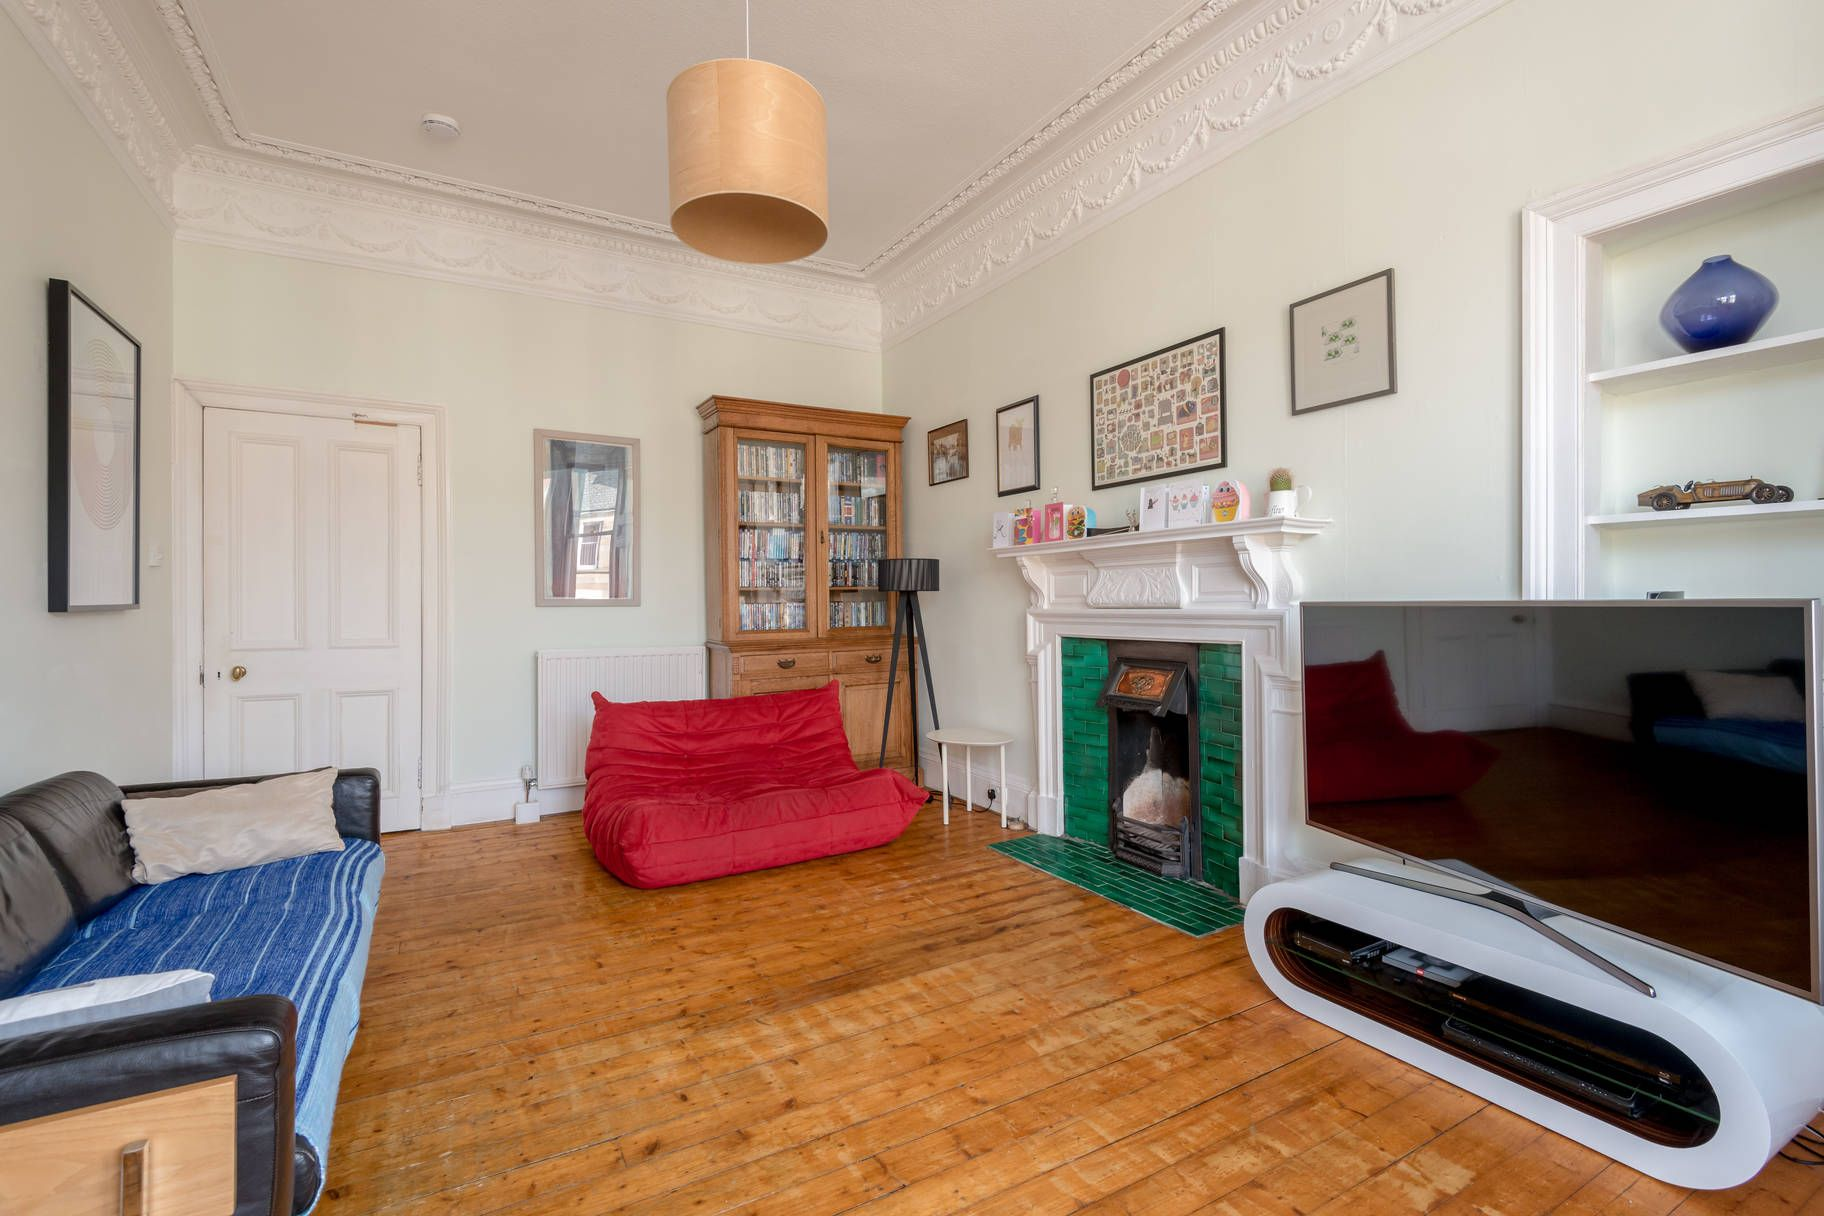 56/5 Spottiswoode Street, Marchmont - Photo 3